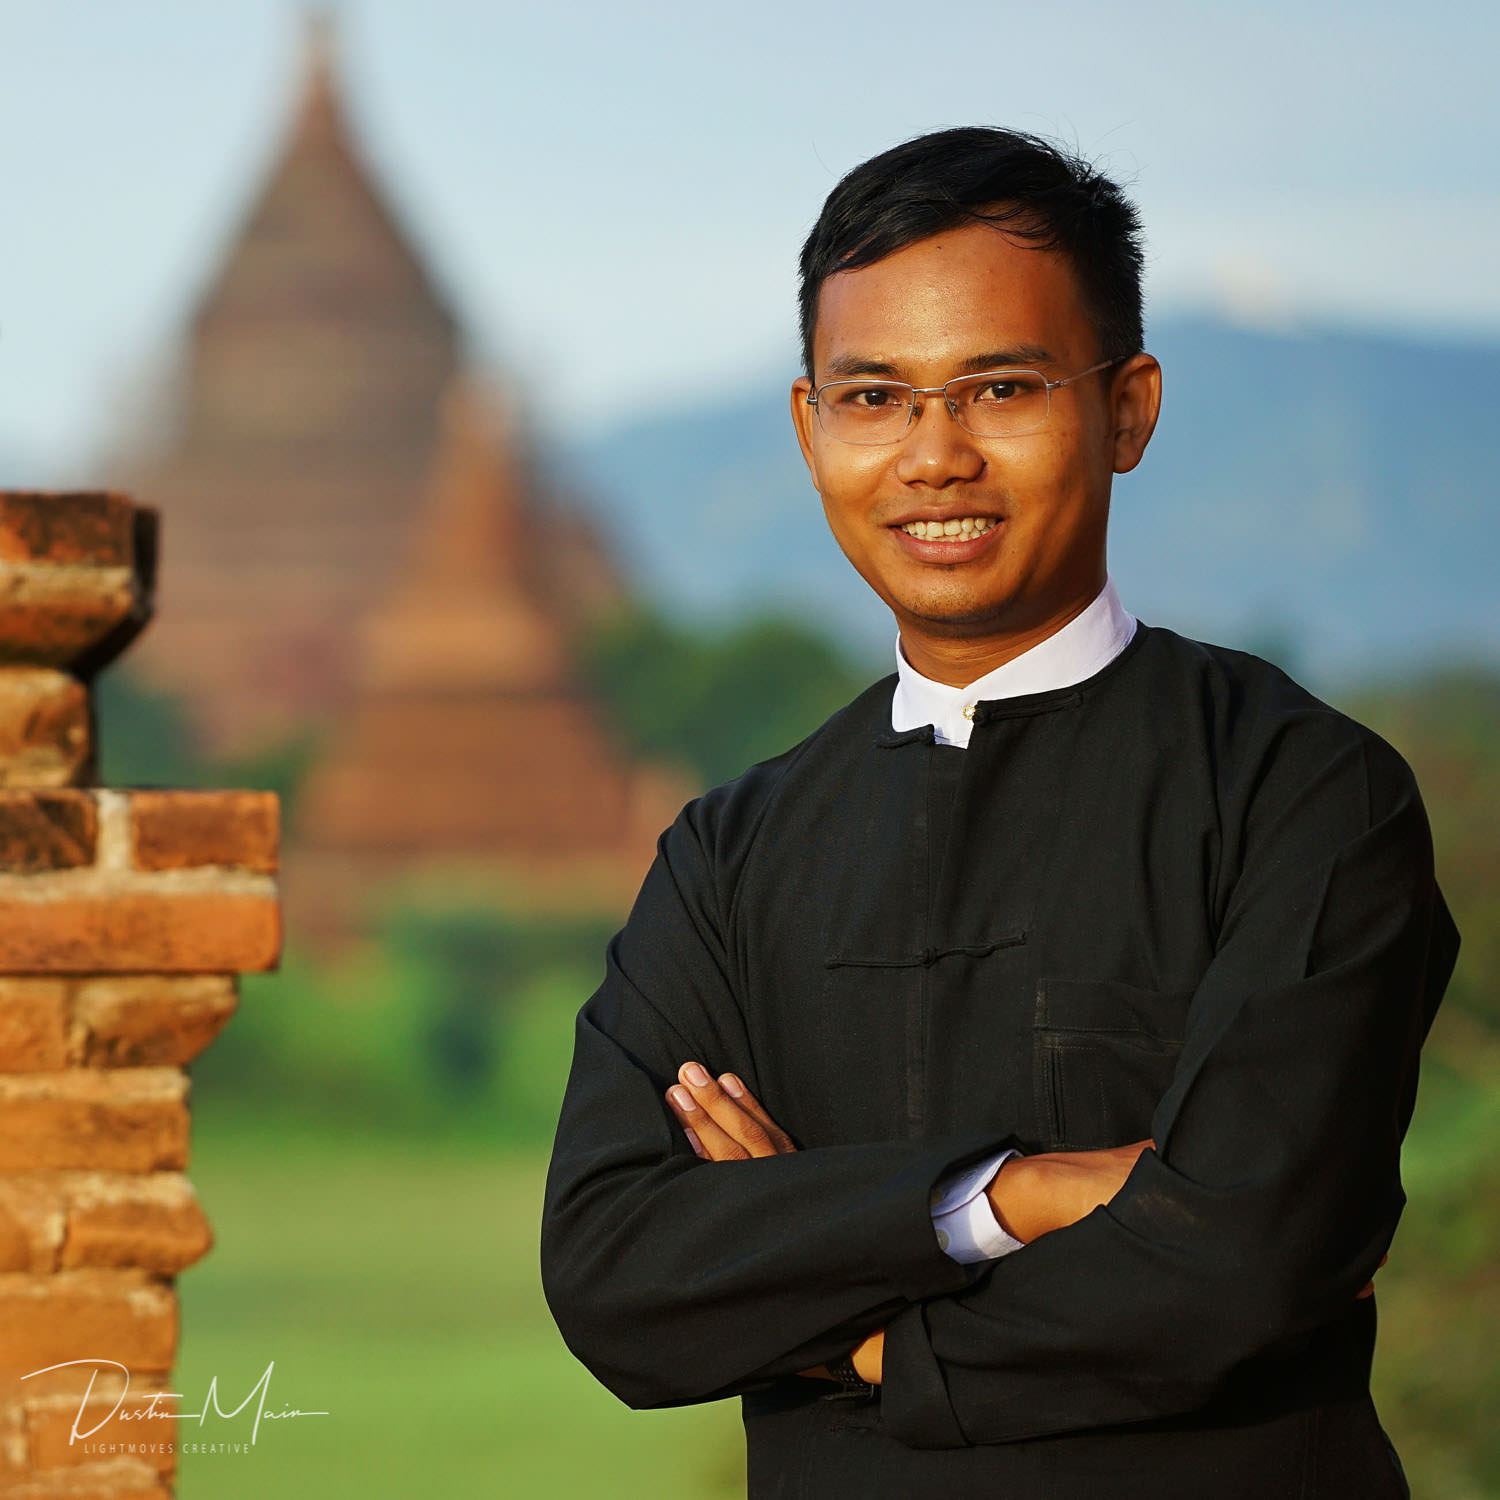 - Aung KoGrowing up playing in the temples of Bagan as a child, it's no wonder Aung Ko knows them like the back of his hand.